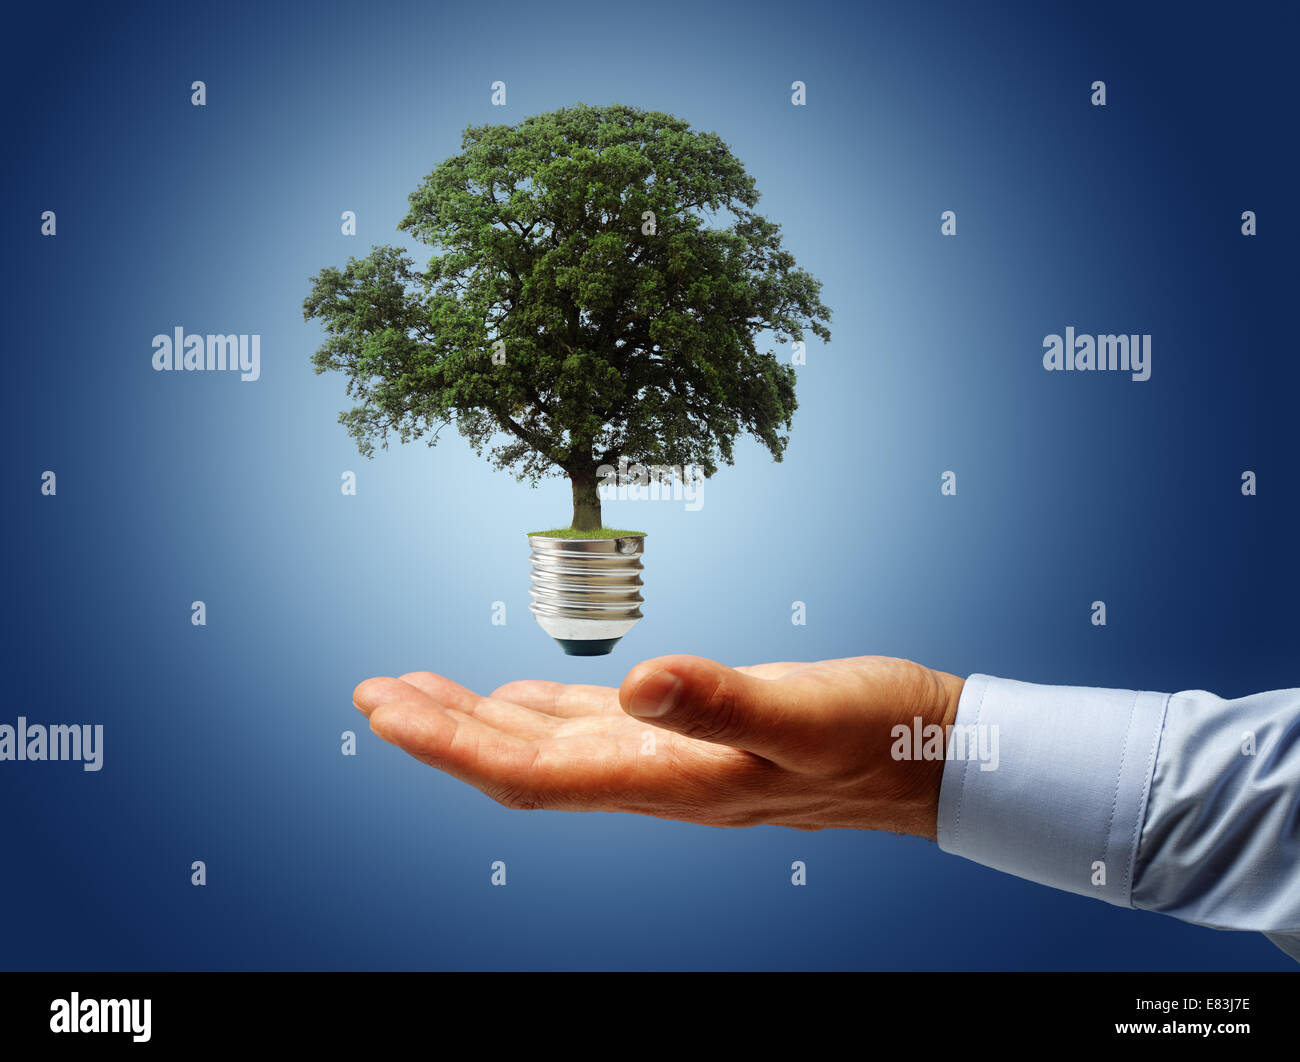 Environmental conservation - Stock Image